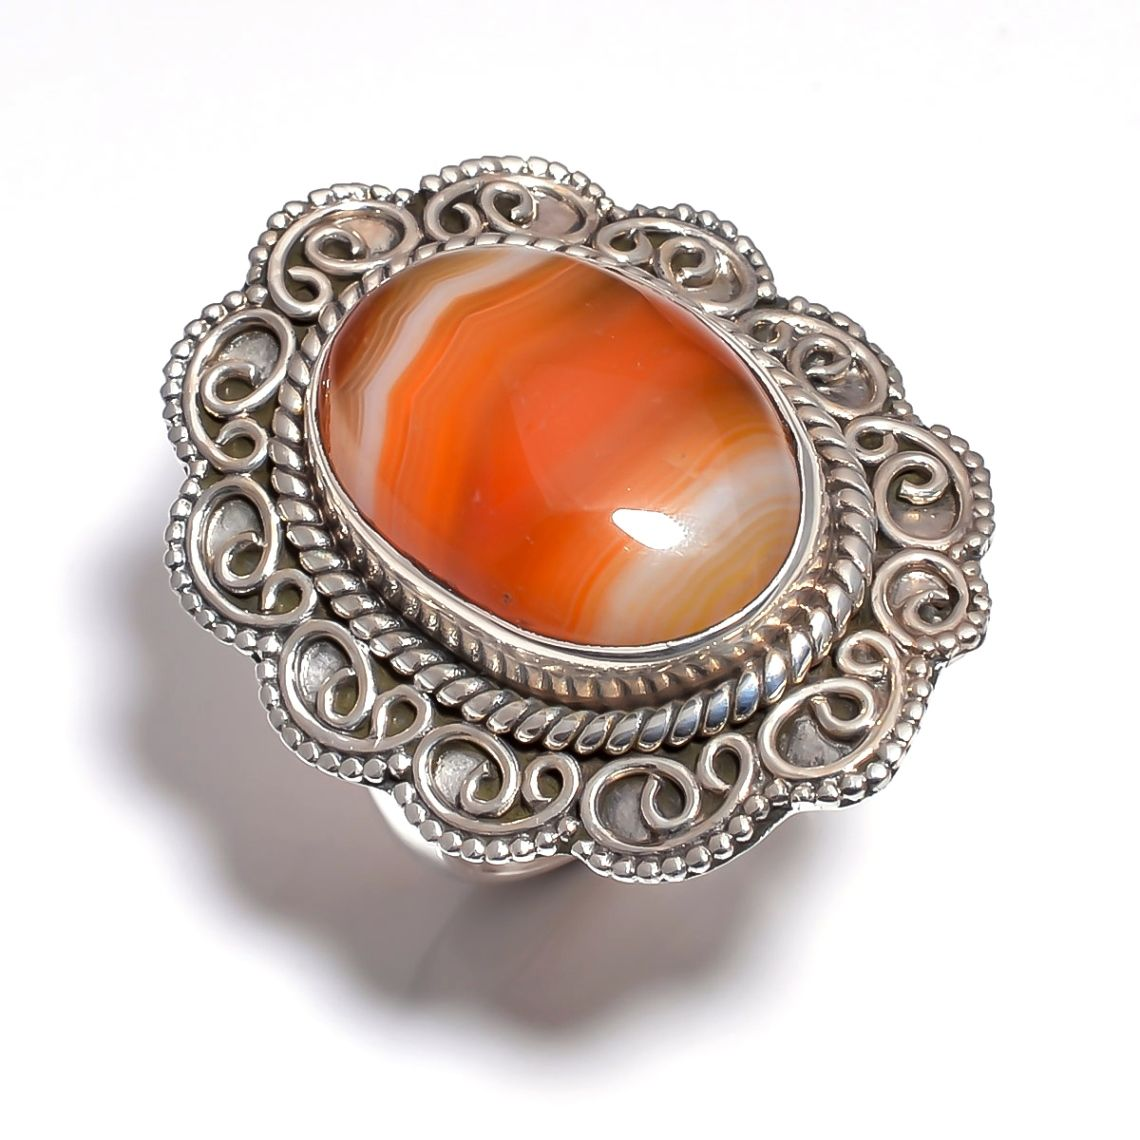 Orange Botswana Agate Gemstone 925 Sterling Silver Ring Size 8